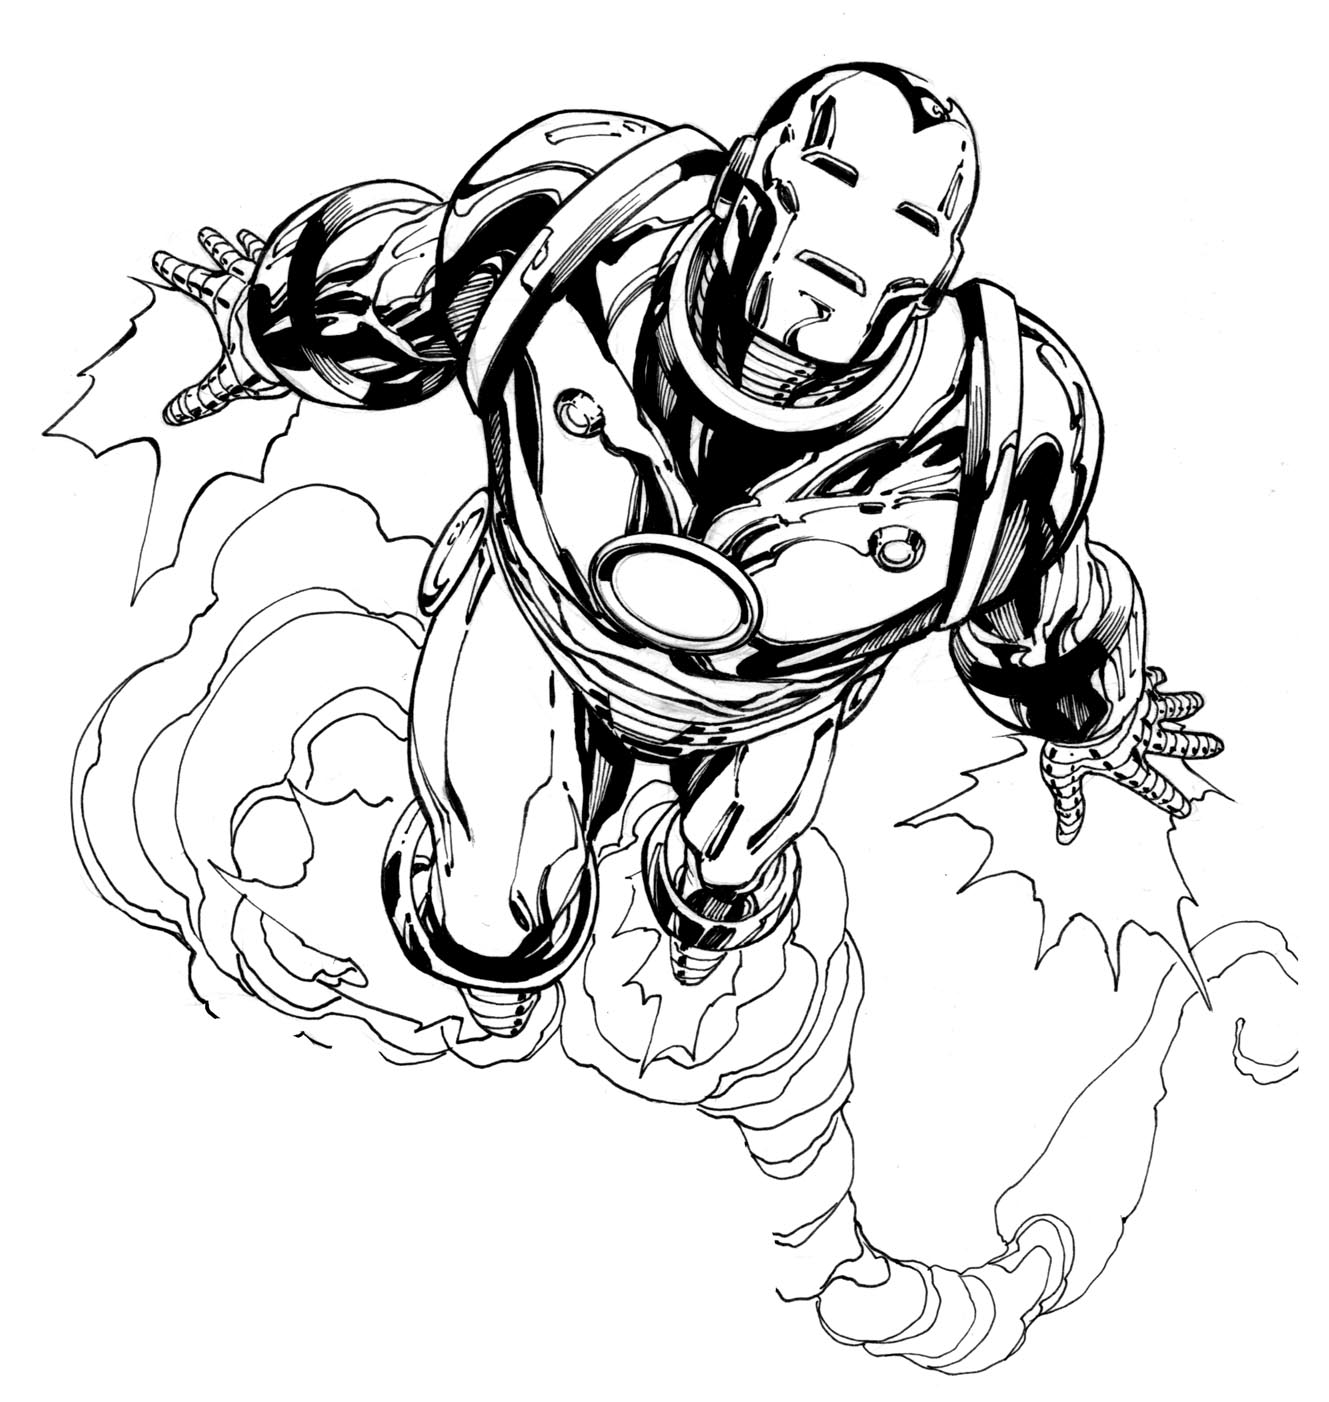 coloring pages iron man iron man to color for children iron man kids coloring pages iron man pages coloring